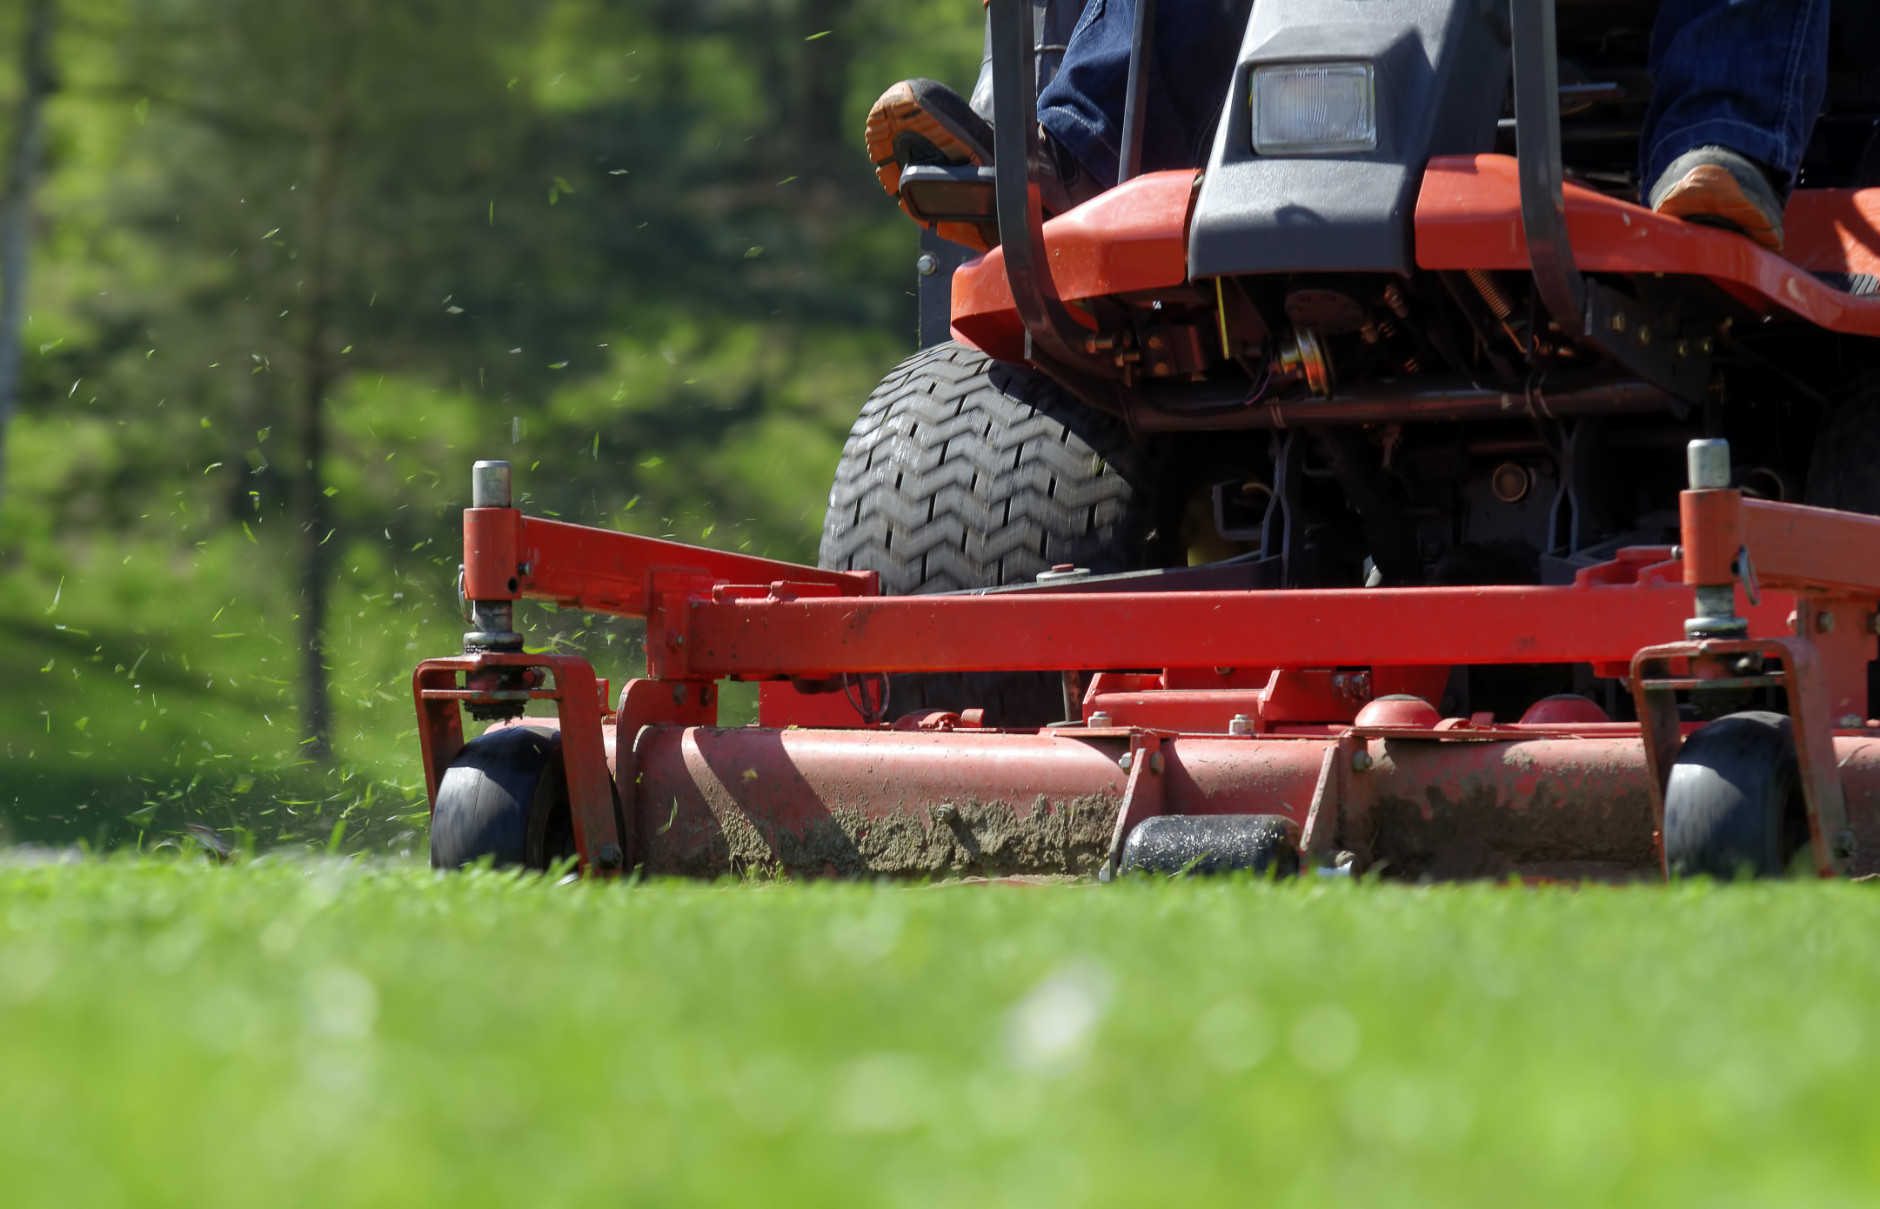 Resolve to have a legal — and healthy — lawn this season